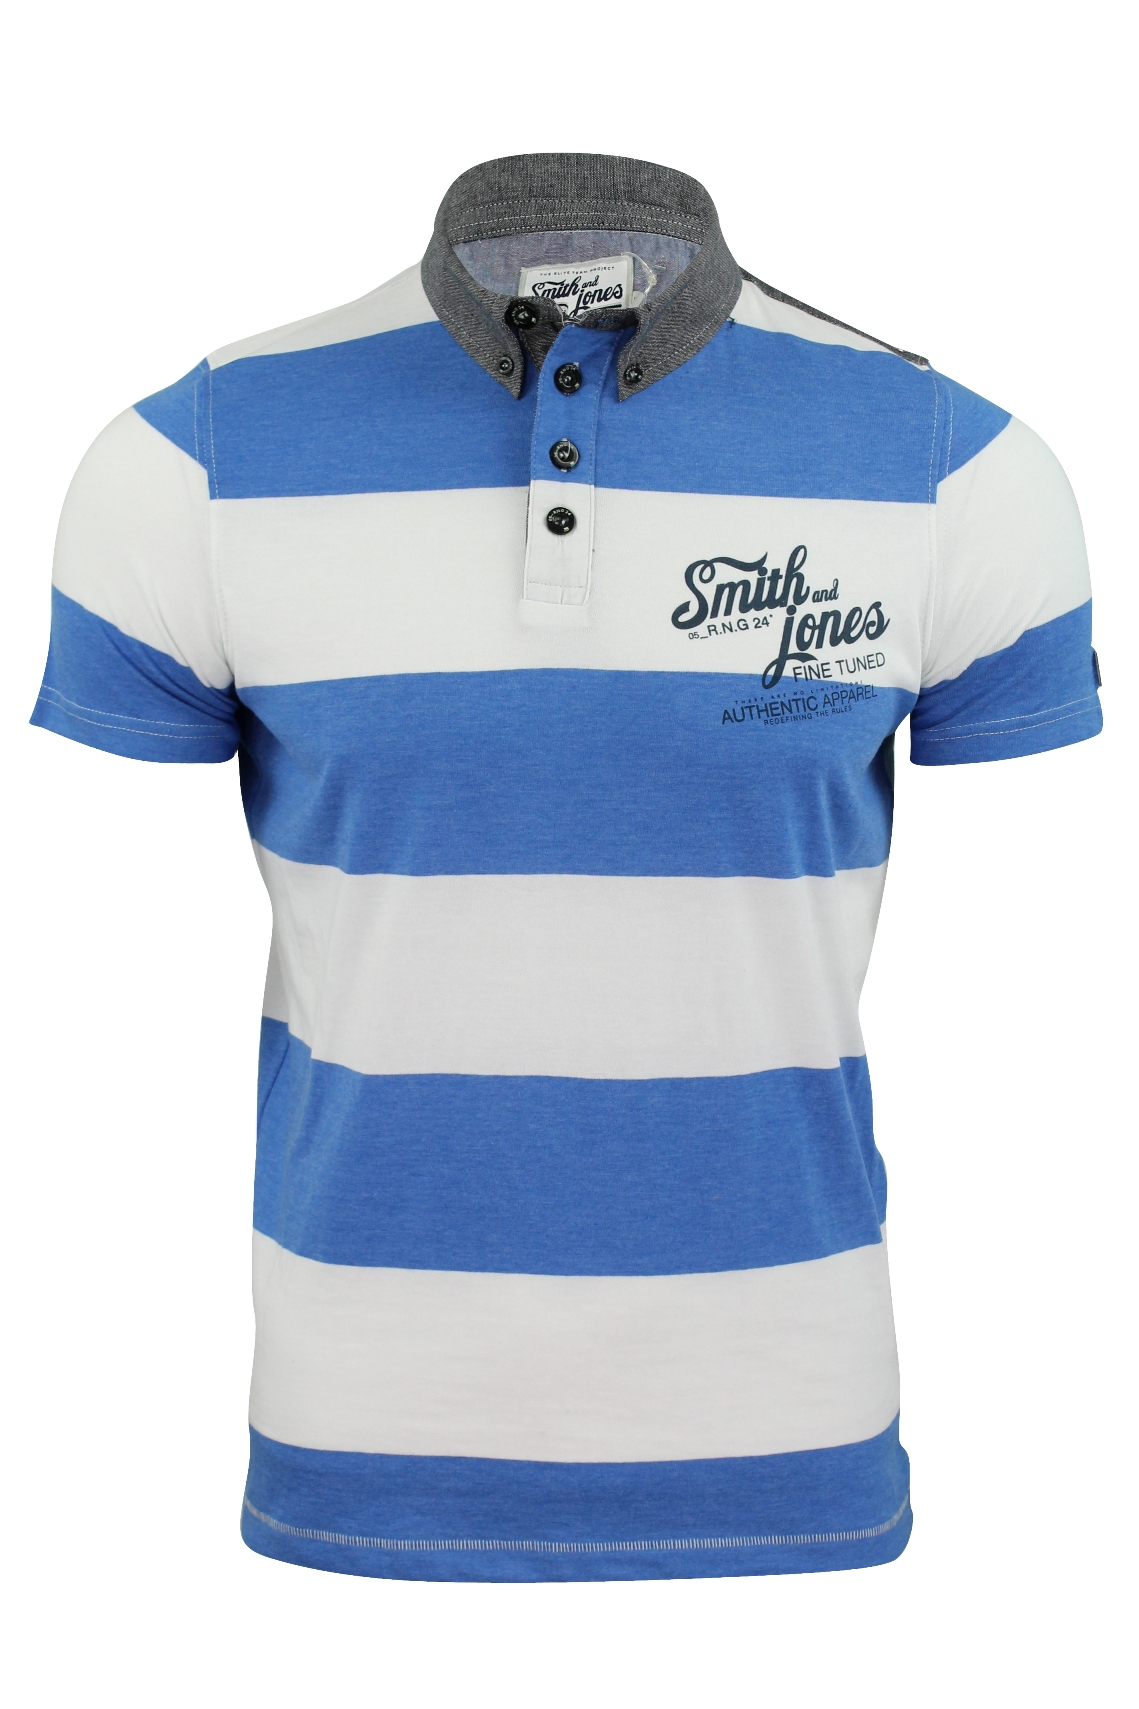 e5546bfcafd8e Camisa Tipo Polo Para Hombre by Smith   Jones Prestbury  Manga Corta ...